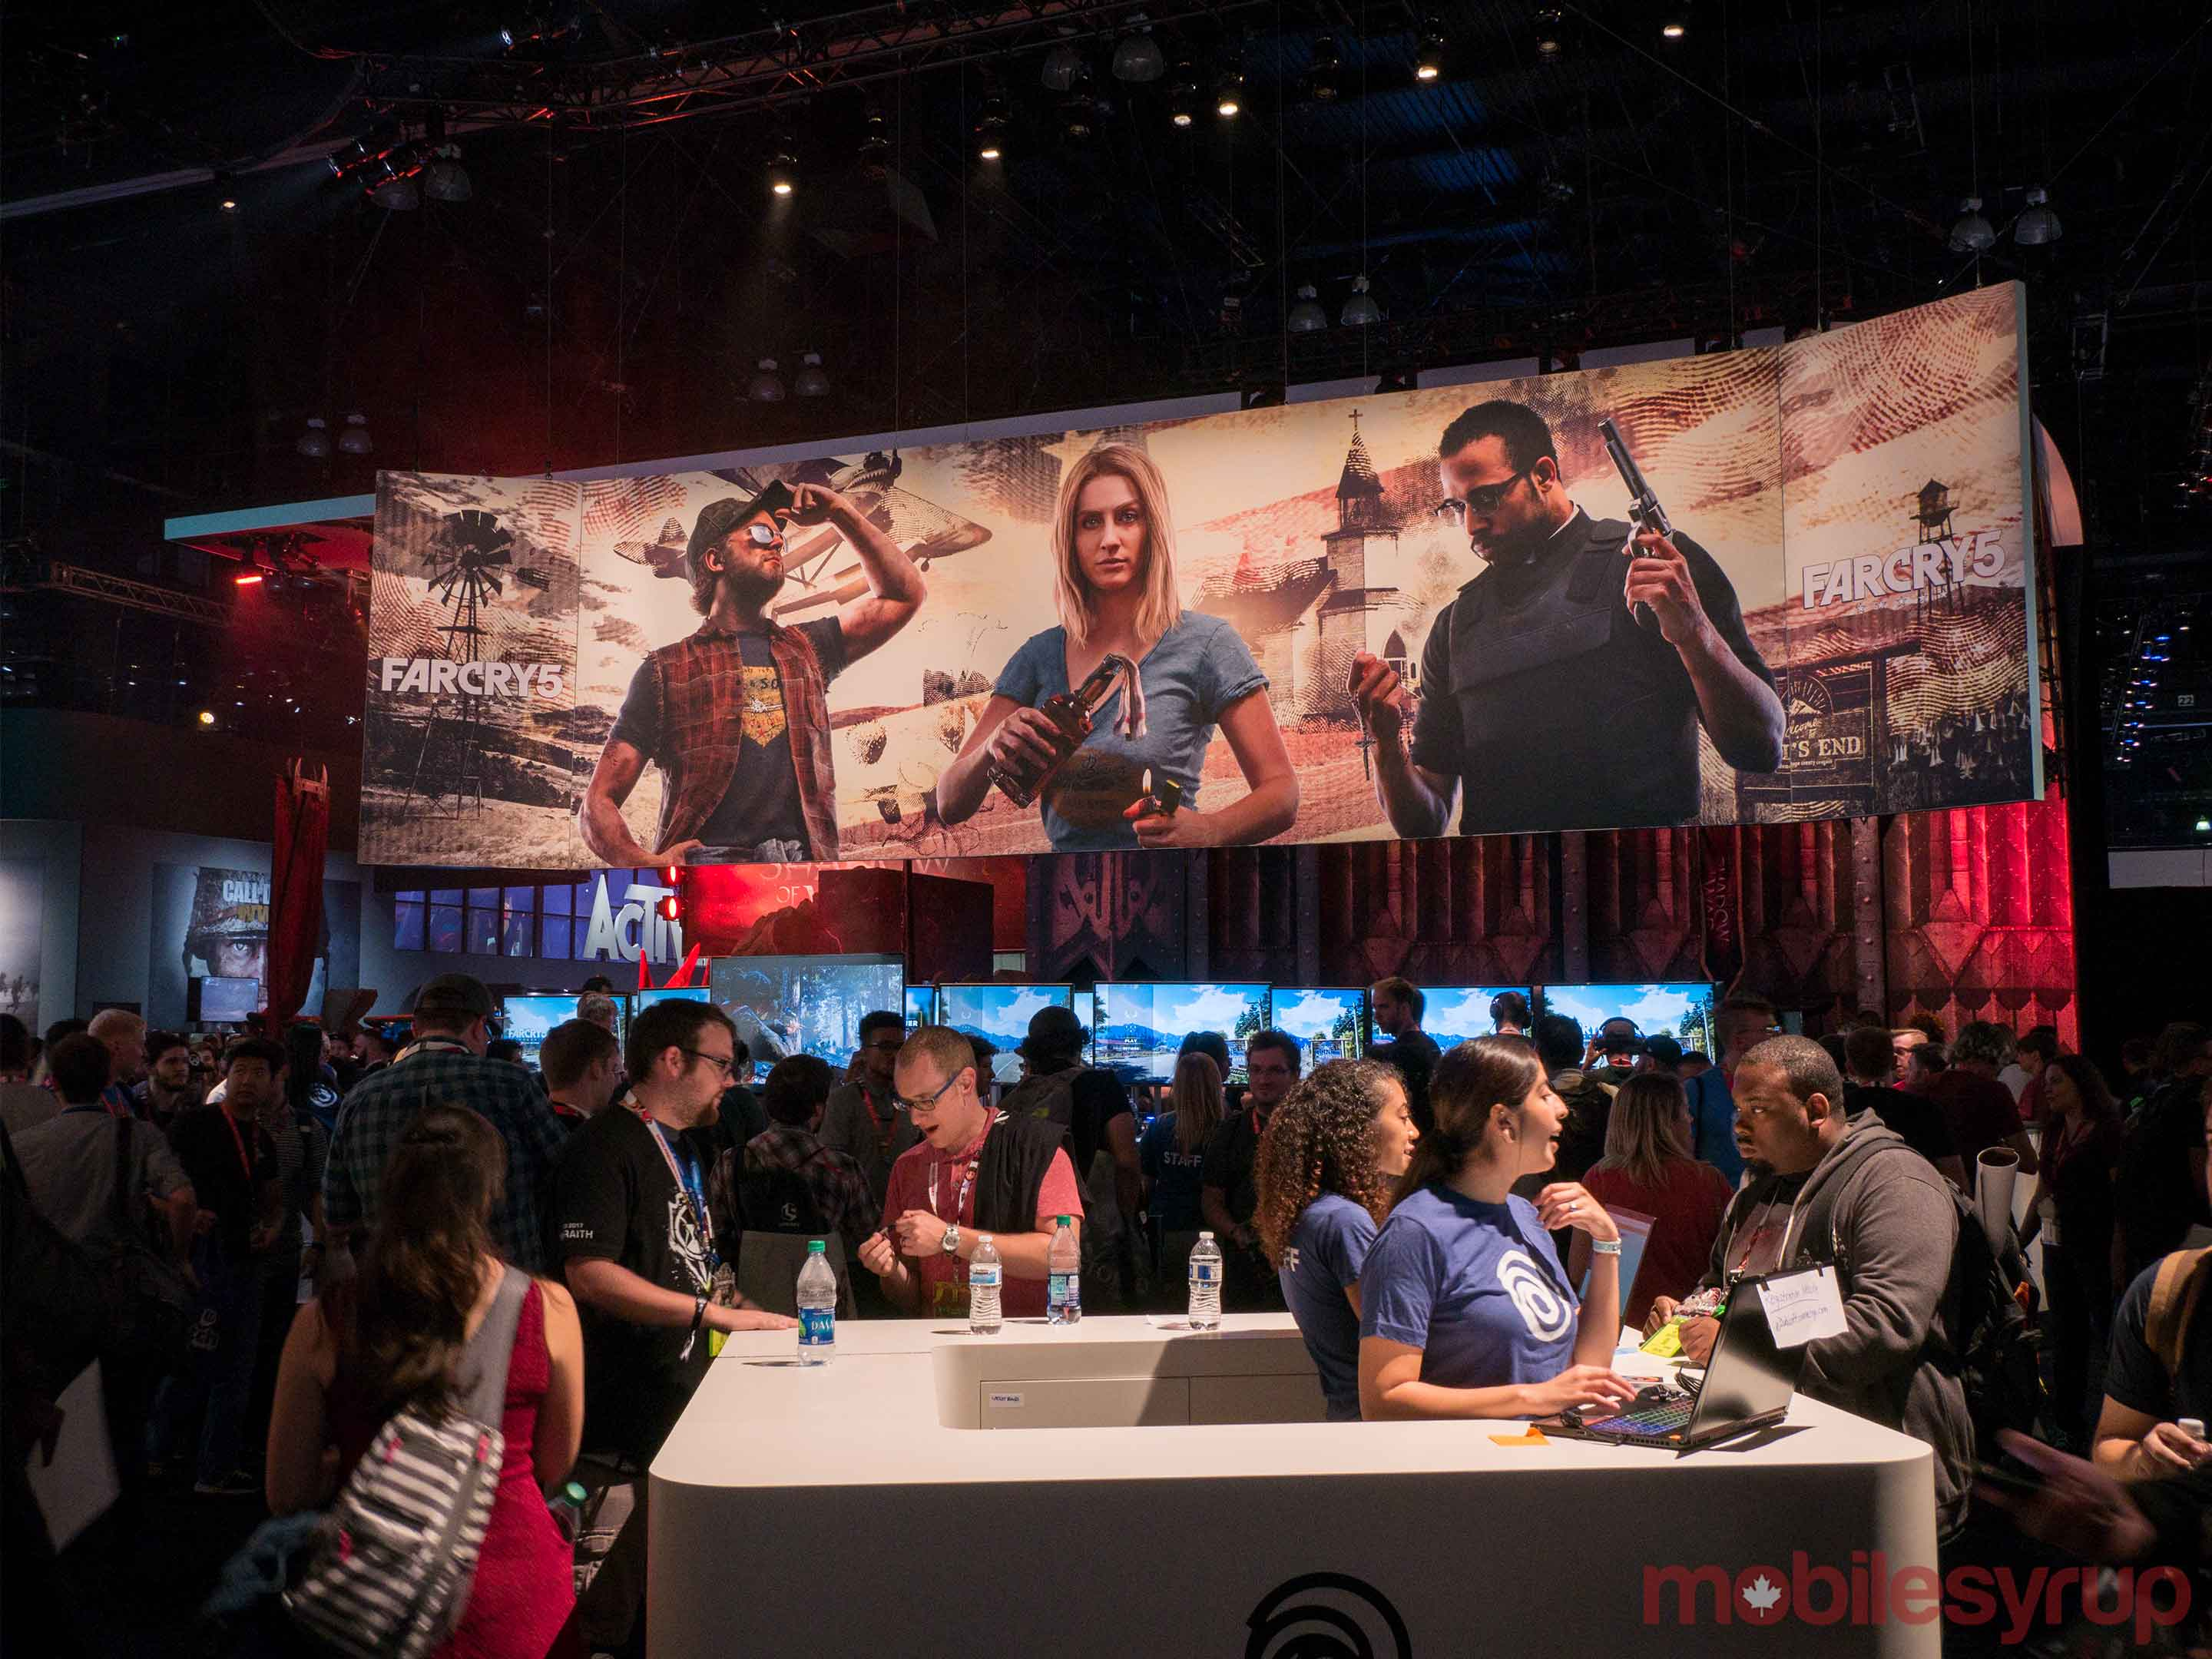 Far Cry 5 booth at E3 2017